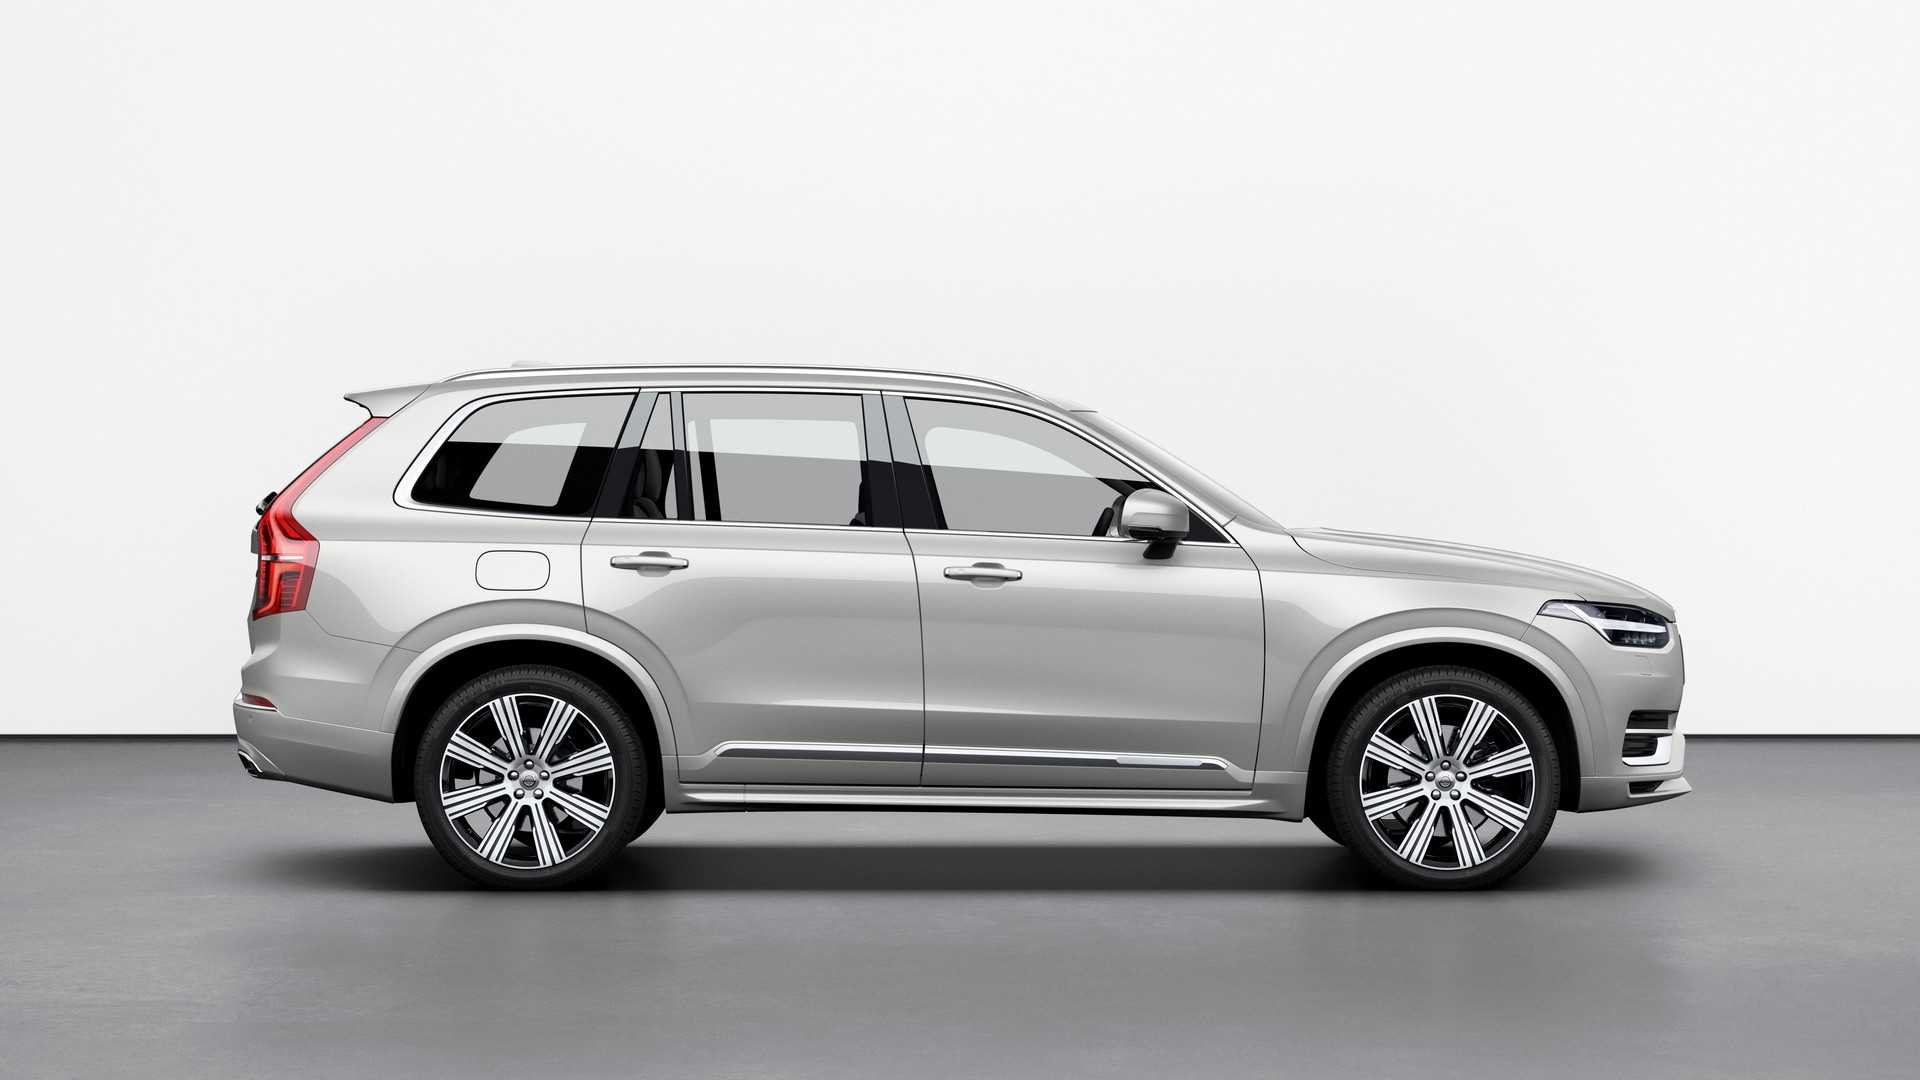 61 All New Volvo Xc90 Facelift 2019 Redesign